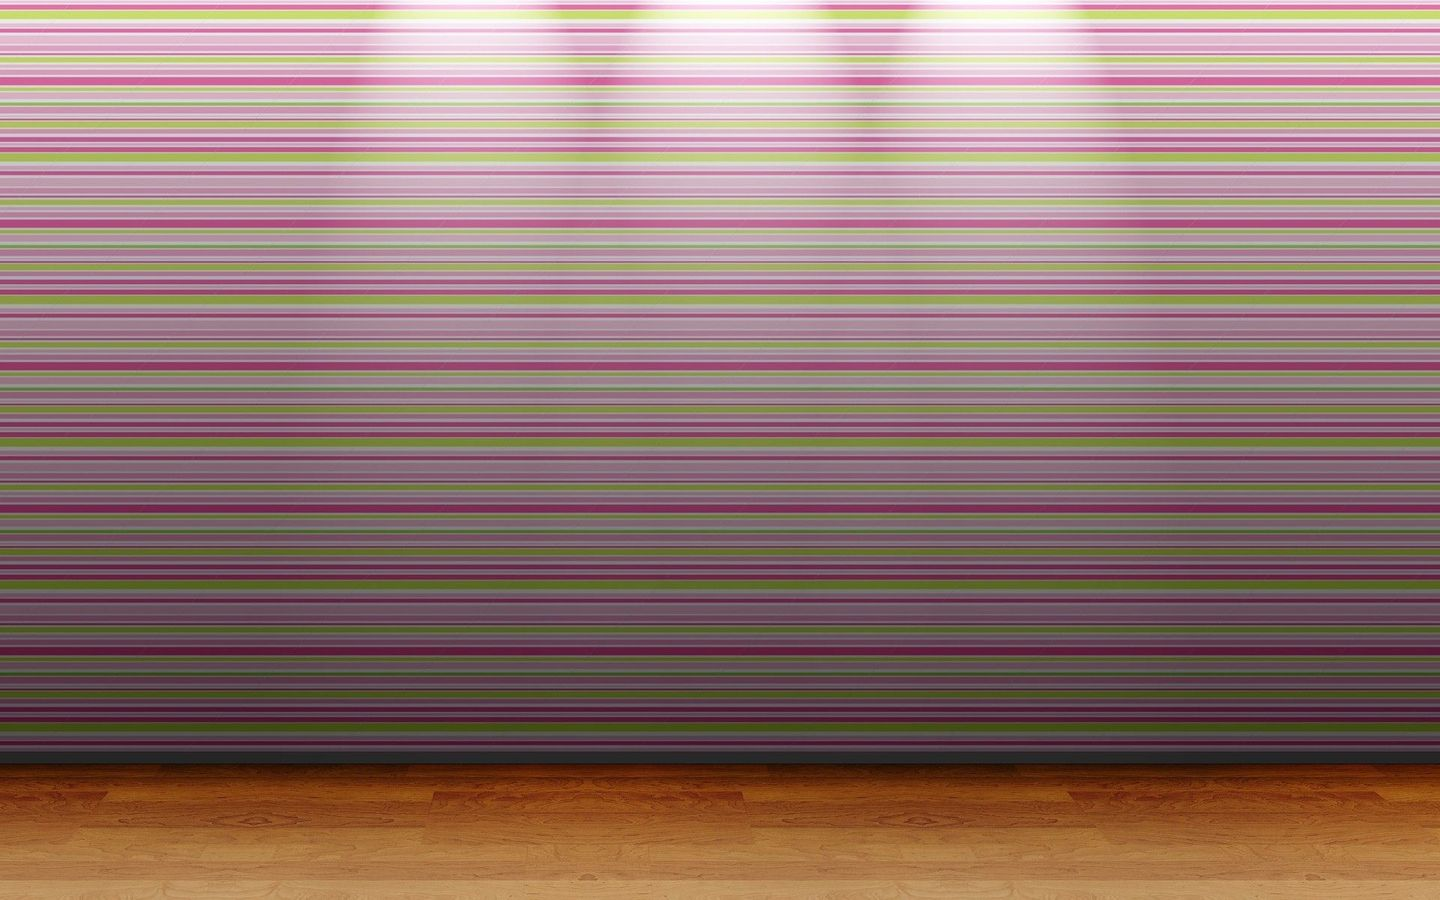 Pink wall stripes and wood floor Widescreen Wallpaper   6140 1440x900